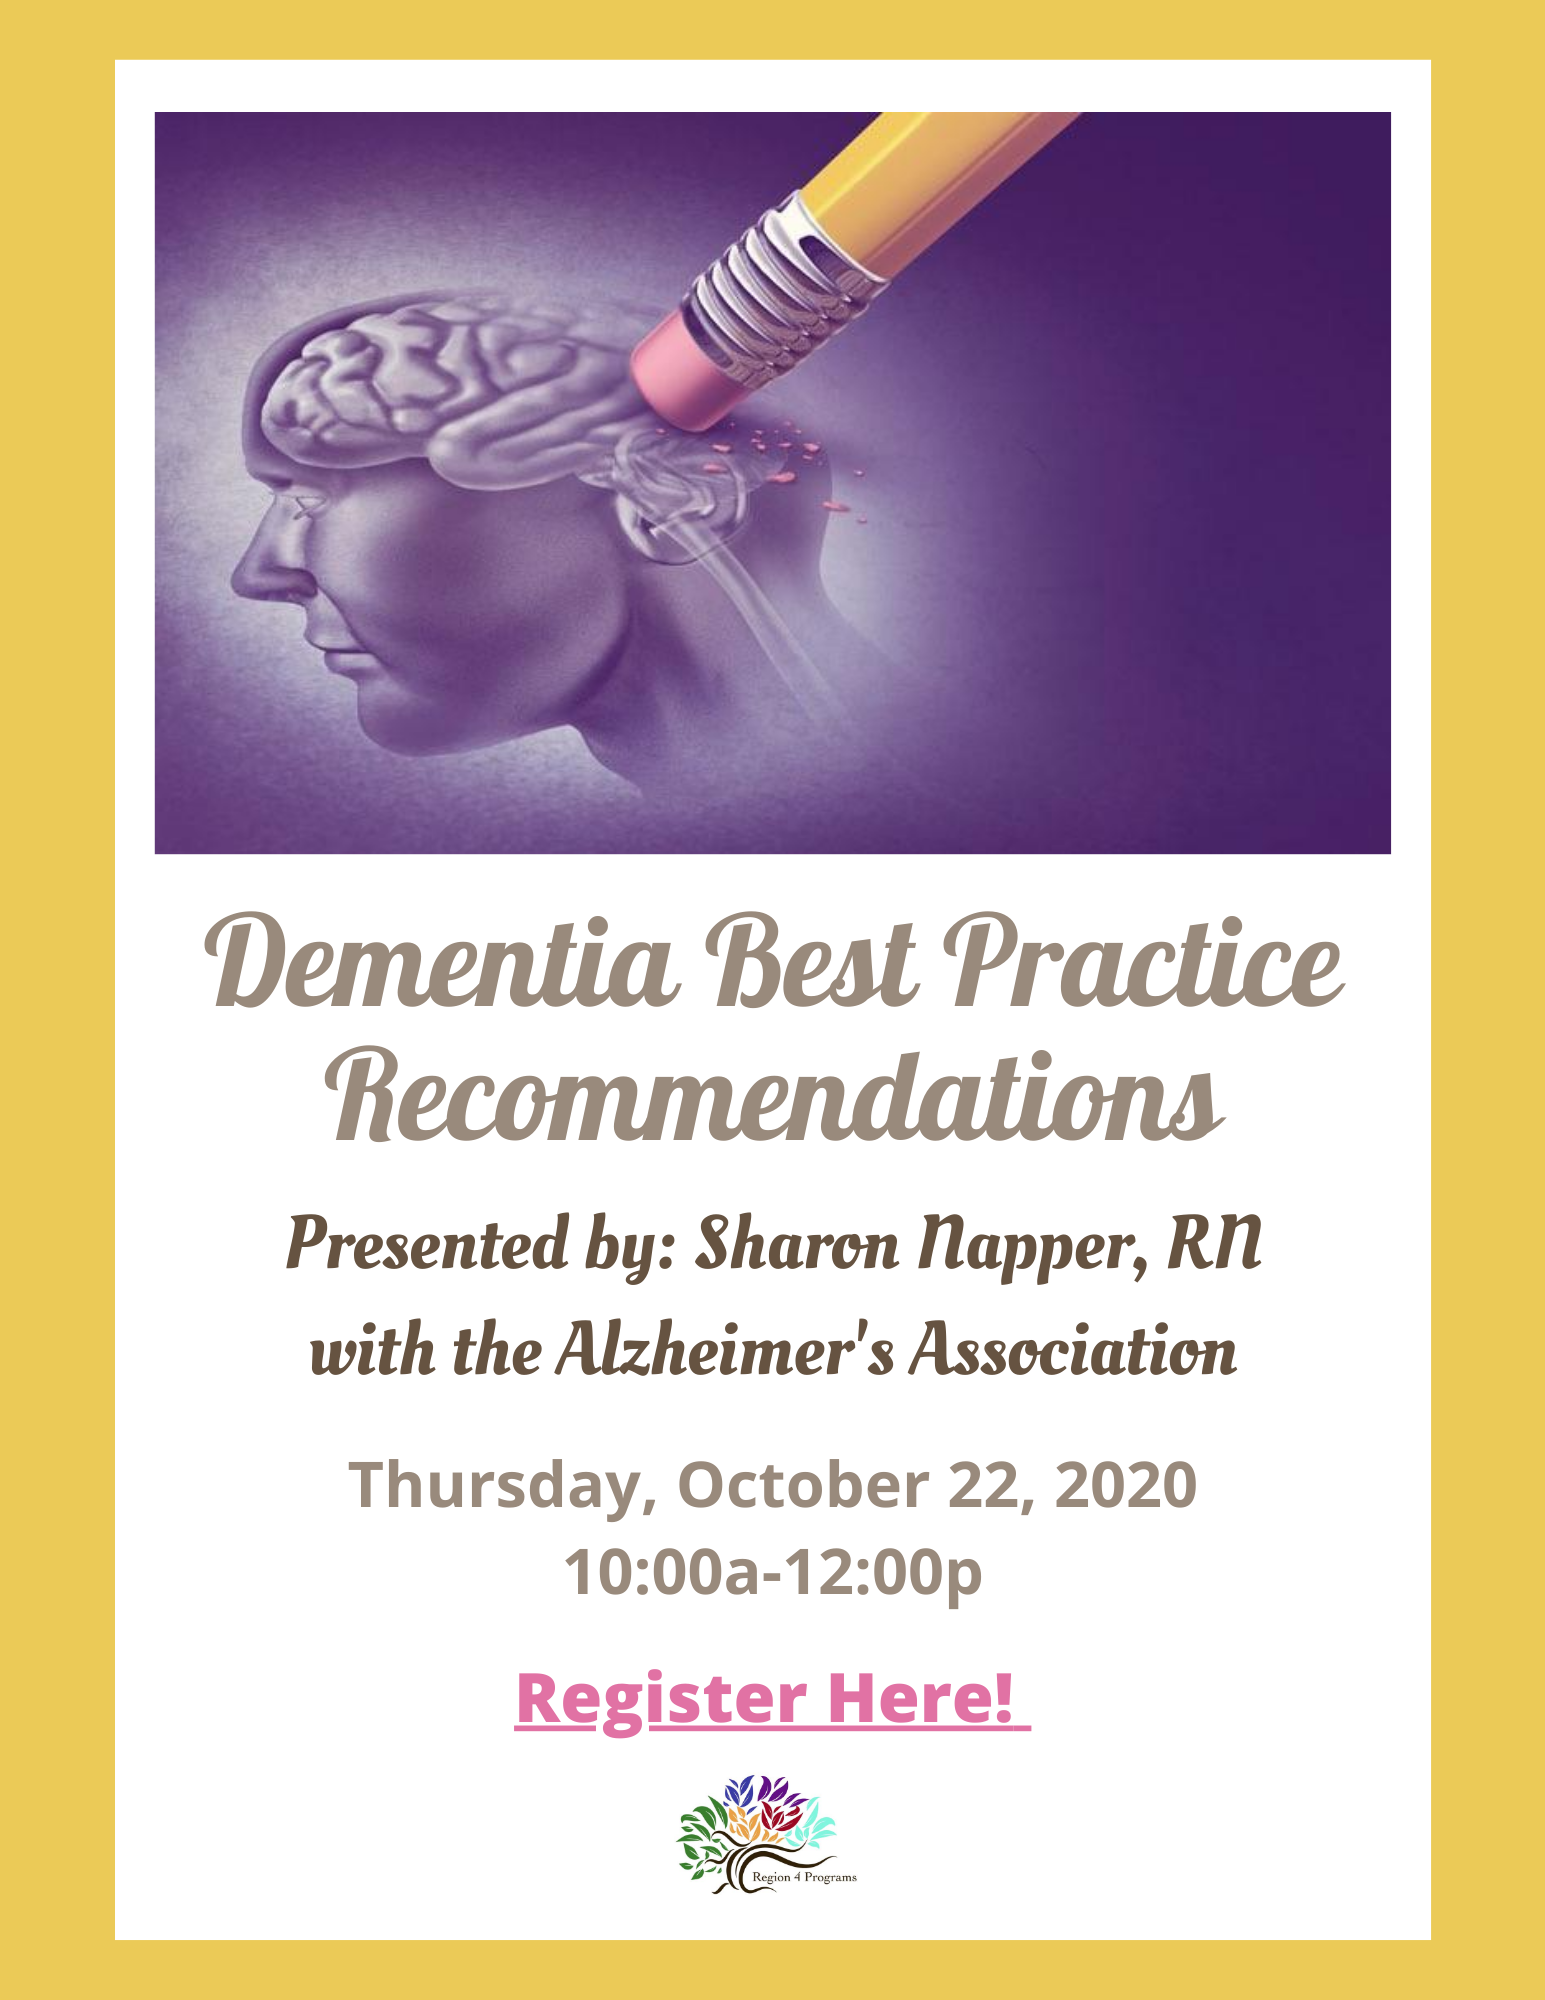 Dementia-Best-Practice-Recommendations-presented-by-Sharon-Napper-RN-with-the-Alzheimers-Association